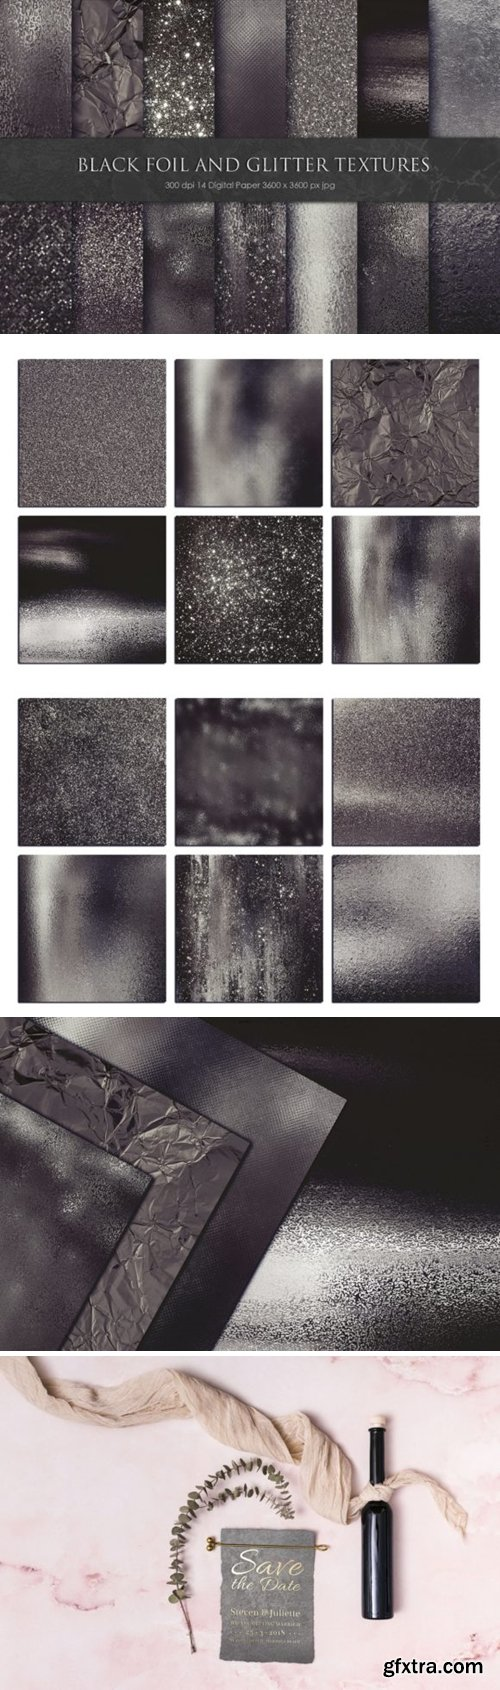 Black Foil and Glitter Textures 892011